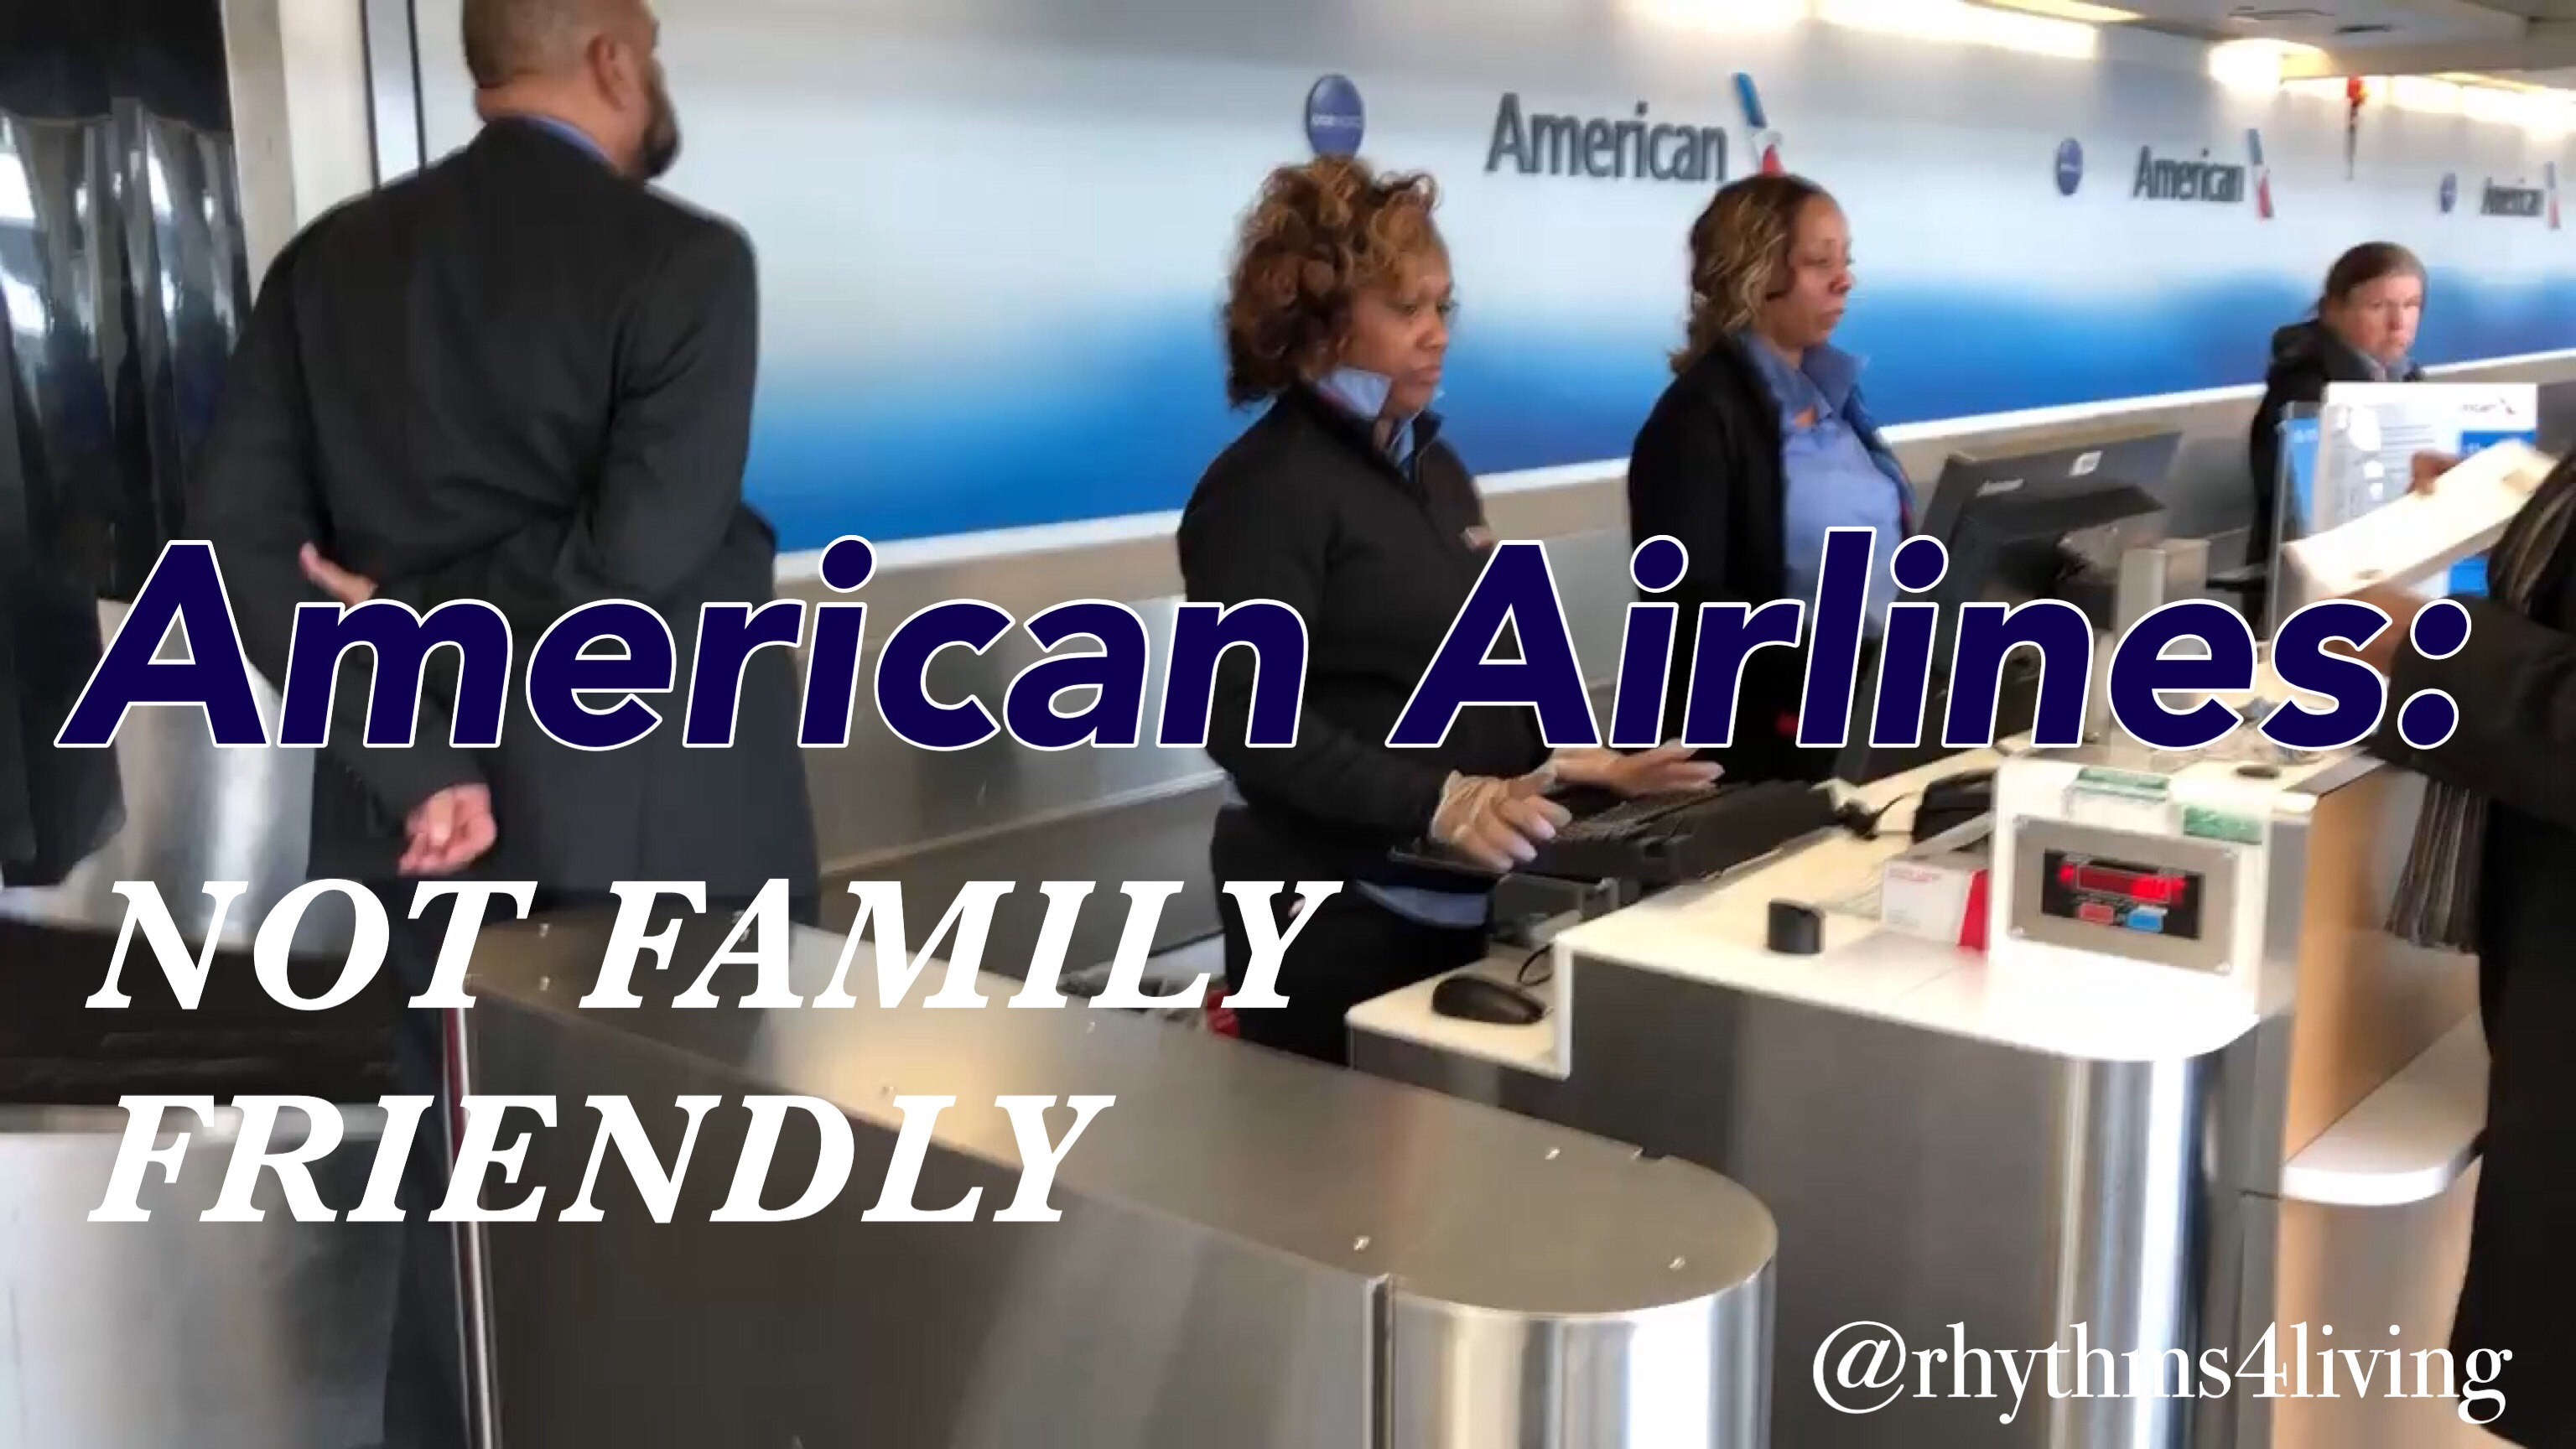 American Airlines not family friendly, stroller policy